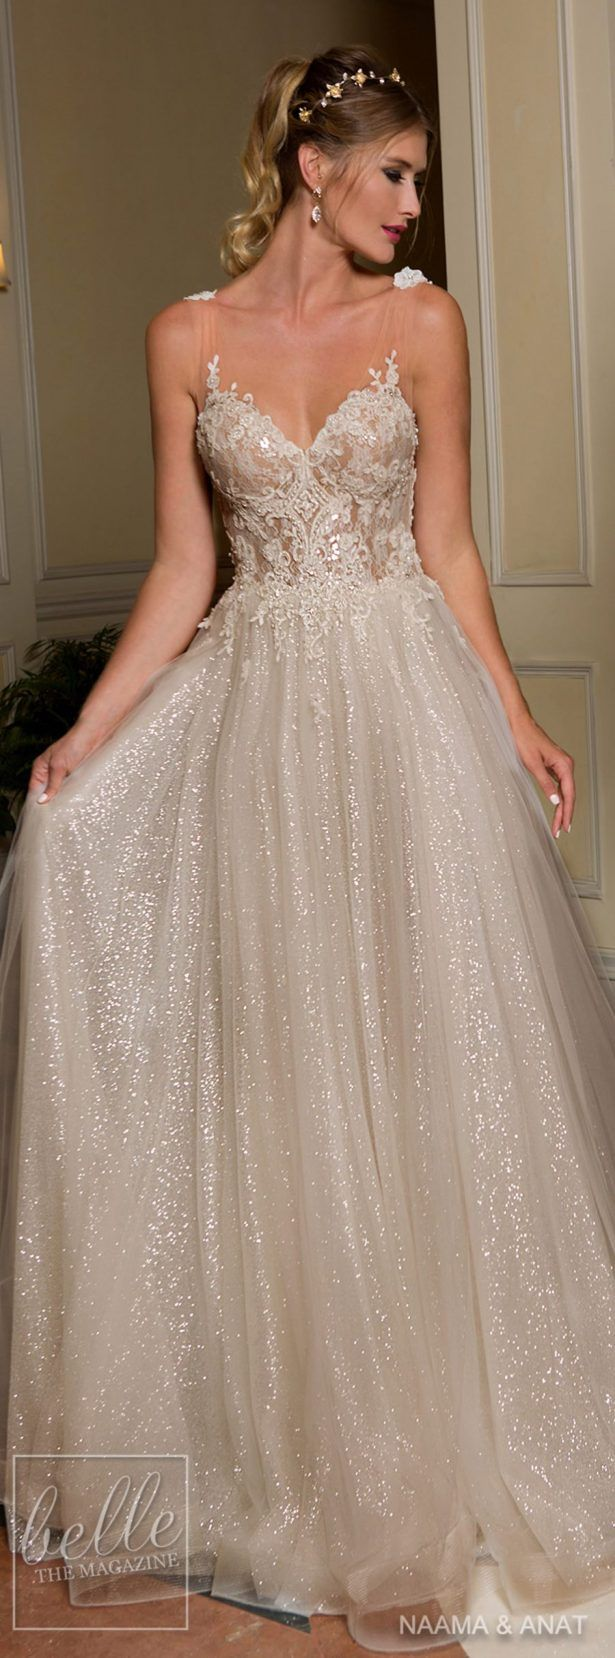 collections wedding dresses